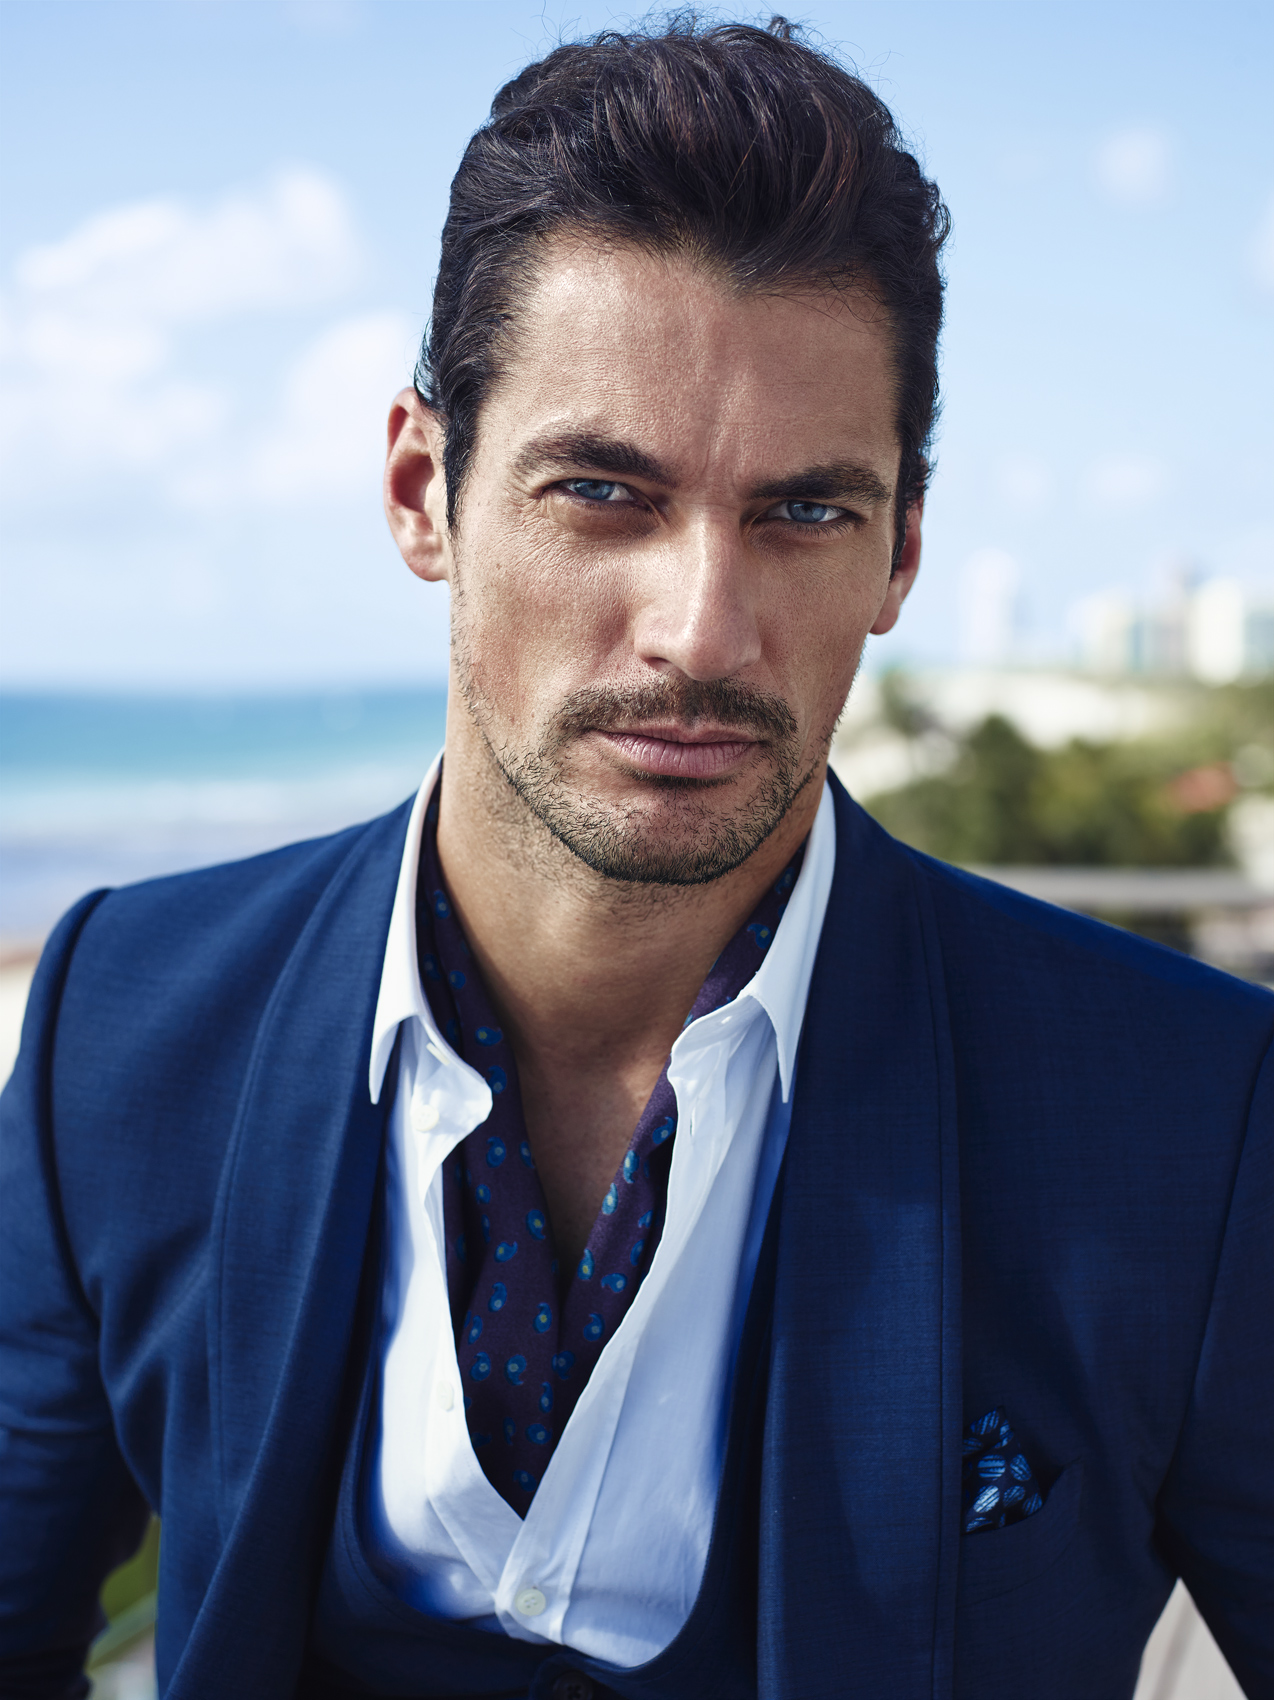 20150711_JR_DavidGandy_0046B_flat_web